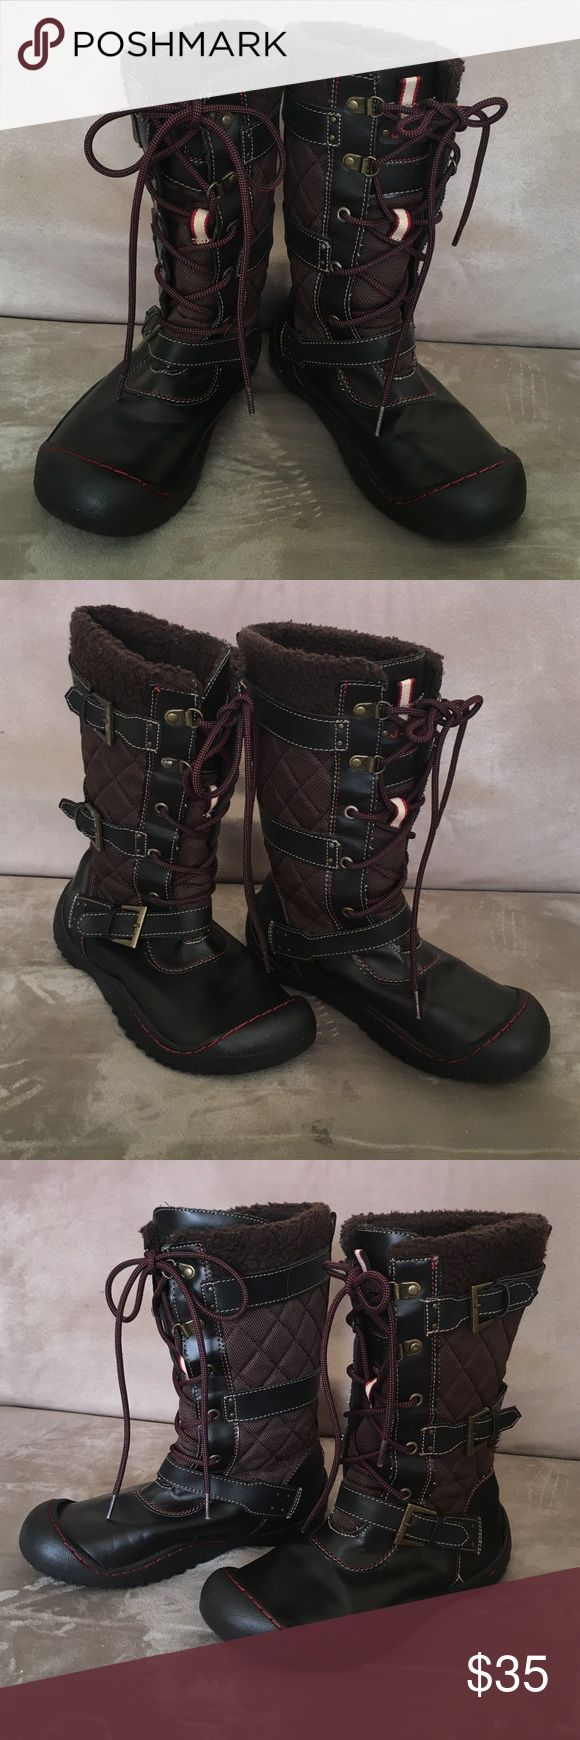 "J-41 Vegan 6.5M Winter Boots Lace Up Brown Stylish comfortable cozy and practical Jay – 41 vegan lace up winter boots and a size 6.5 medium. These Booch featured jeep engineered traction sole lace up front with cross over accent buckles and faux fur top line. Boots are 11"" tall and lace up front provides for adjustable calf width ranging from 13""-17"". J-41 Shoes Winter & Rain Boots"